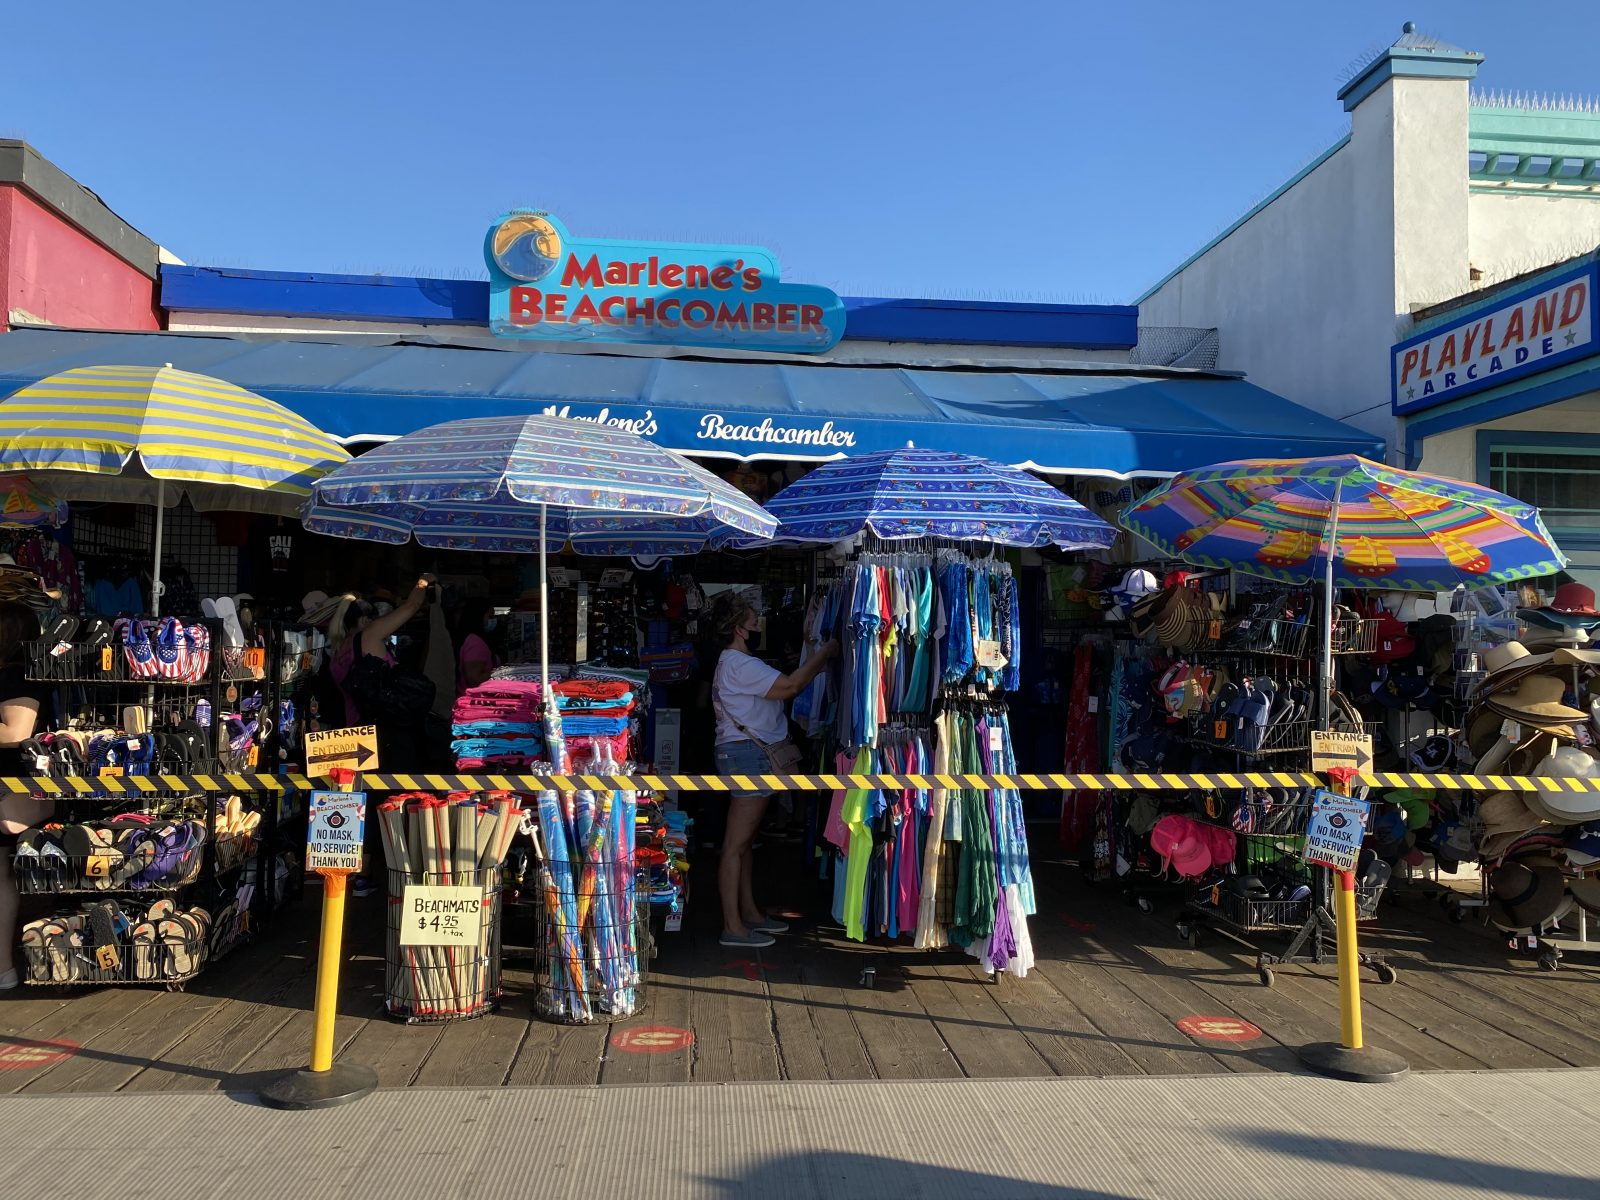 Exterior of Marlene's Beachcomber shop